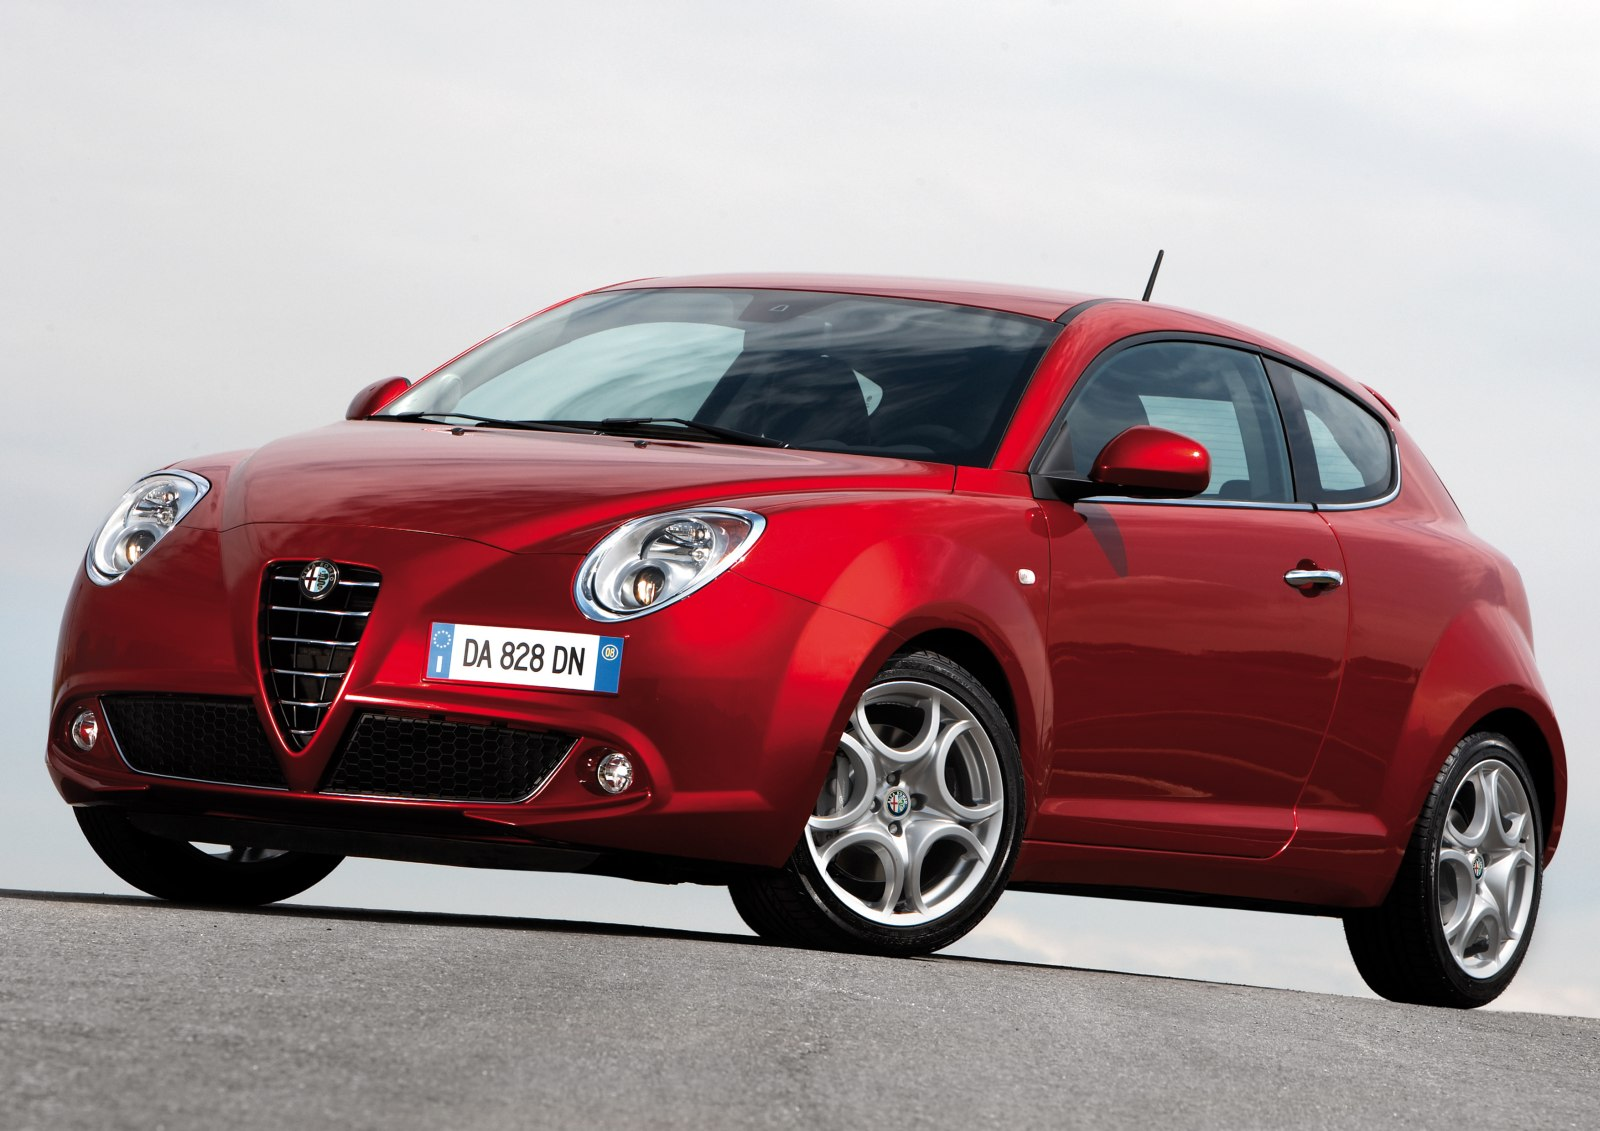 der neue alfa romeo mito ist da alfa romeo news. Black Bedroom Furniture Sets. Home Design Ideas